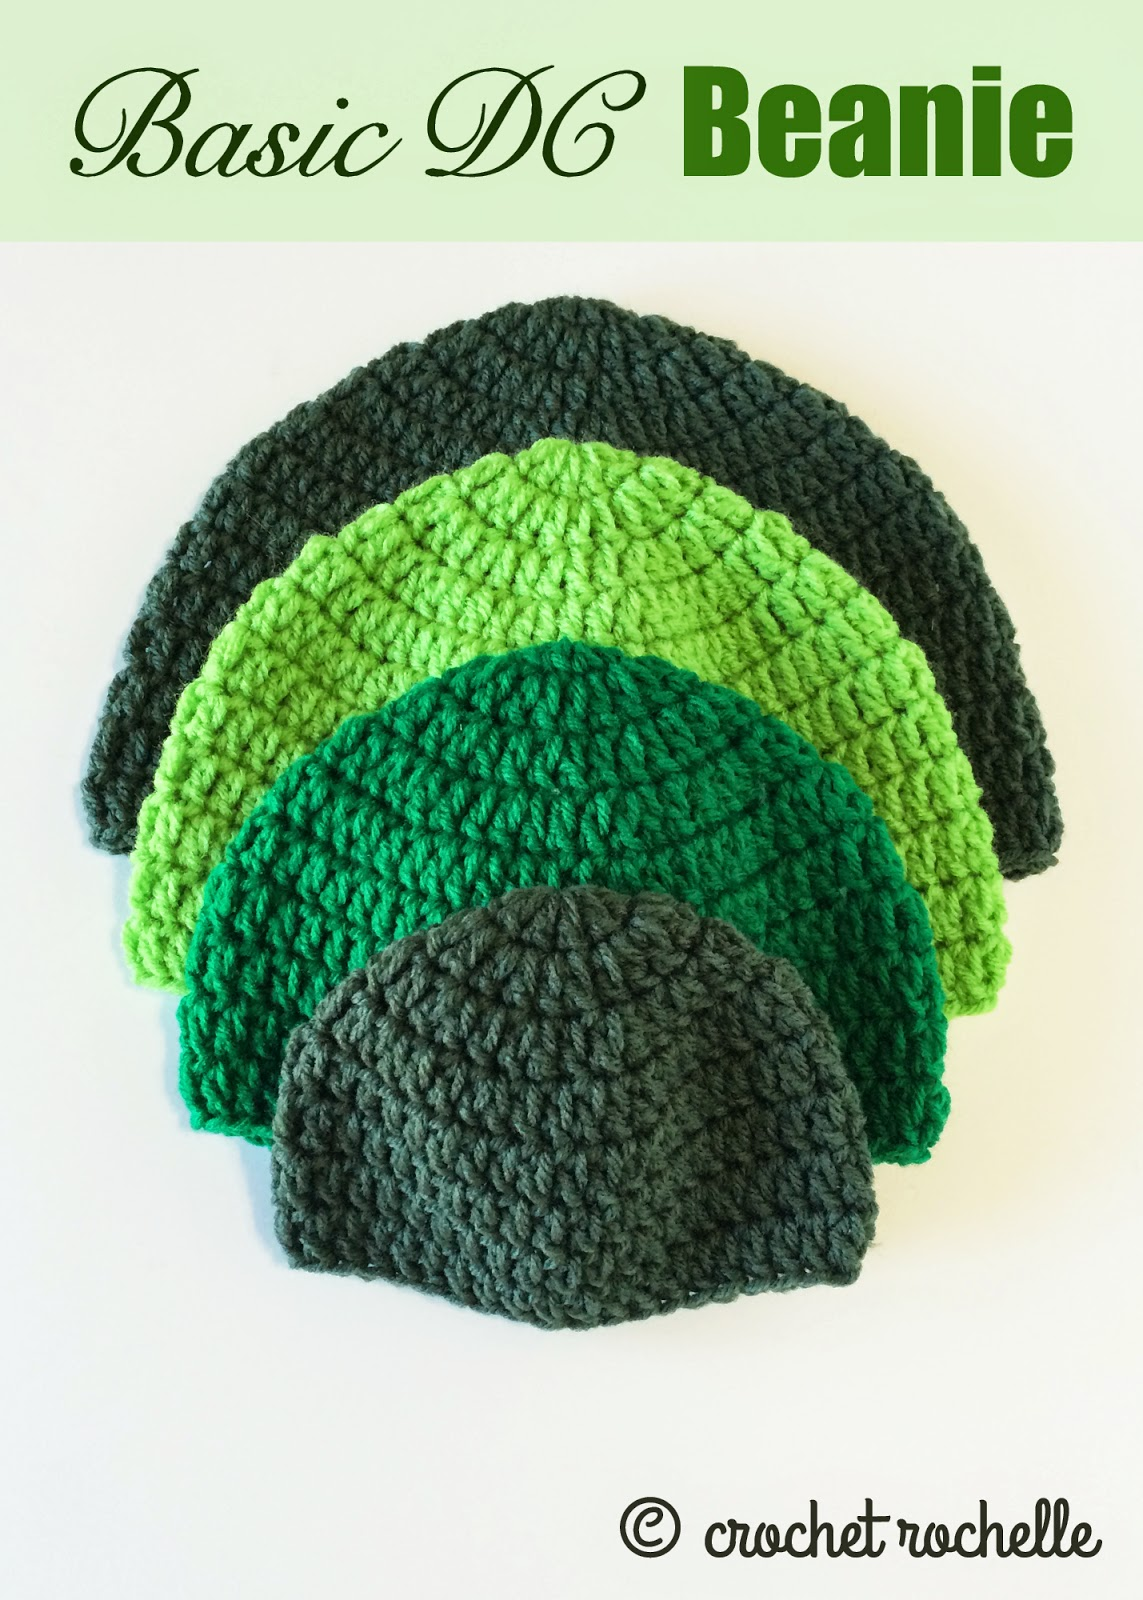 Simple Crochet Beanie Free Pattern Awesome Inspiration Ideas